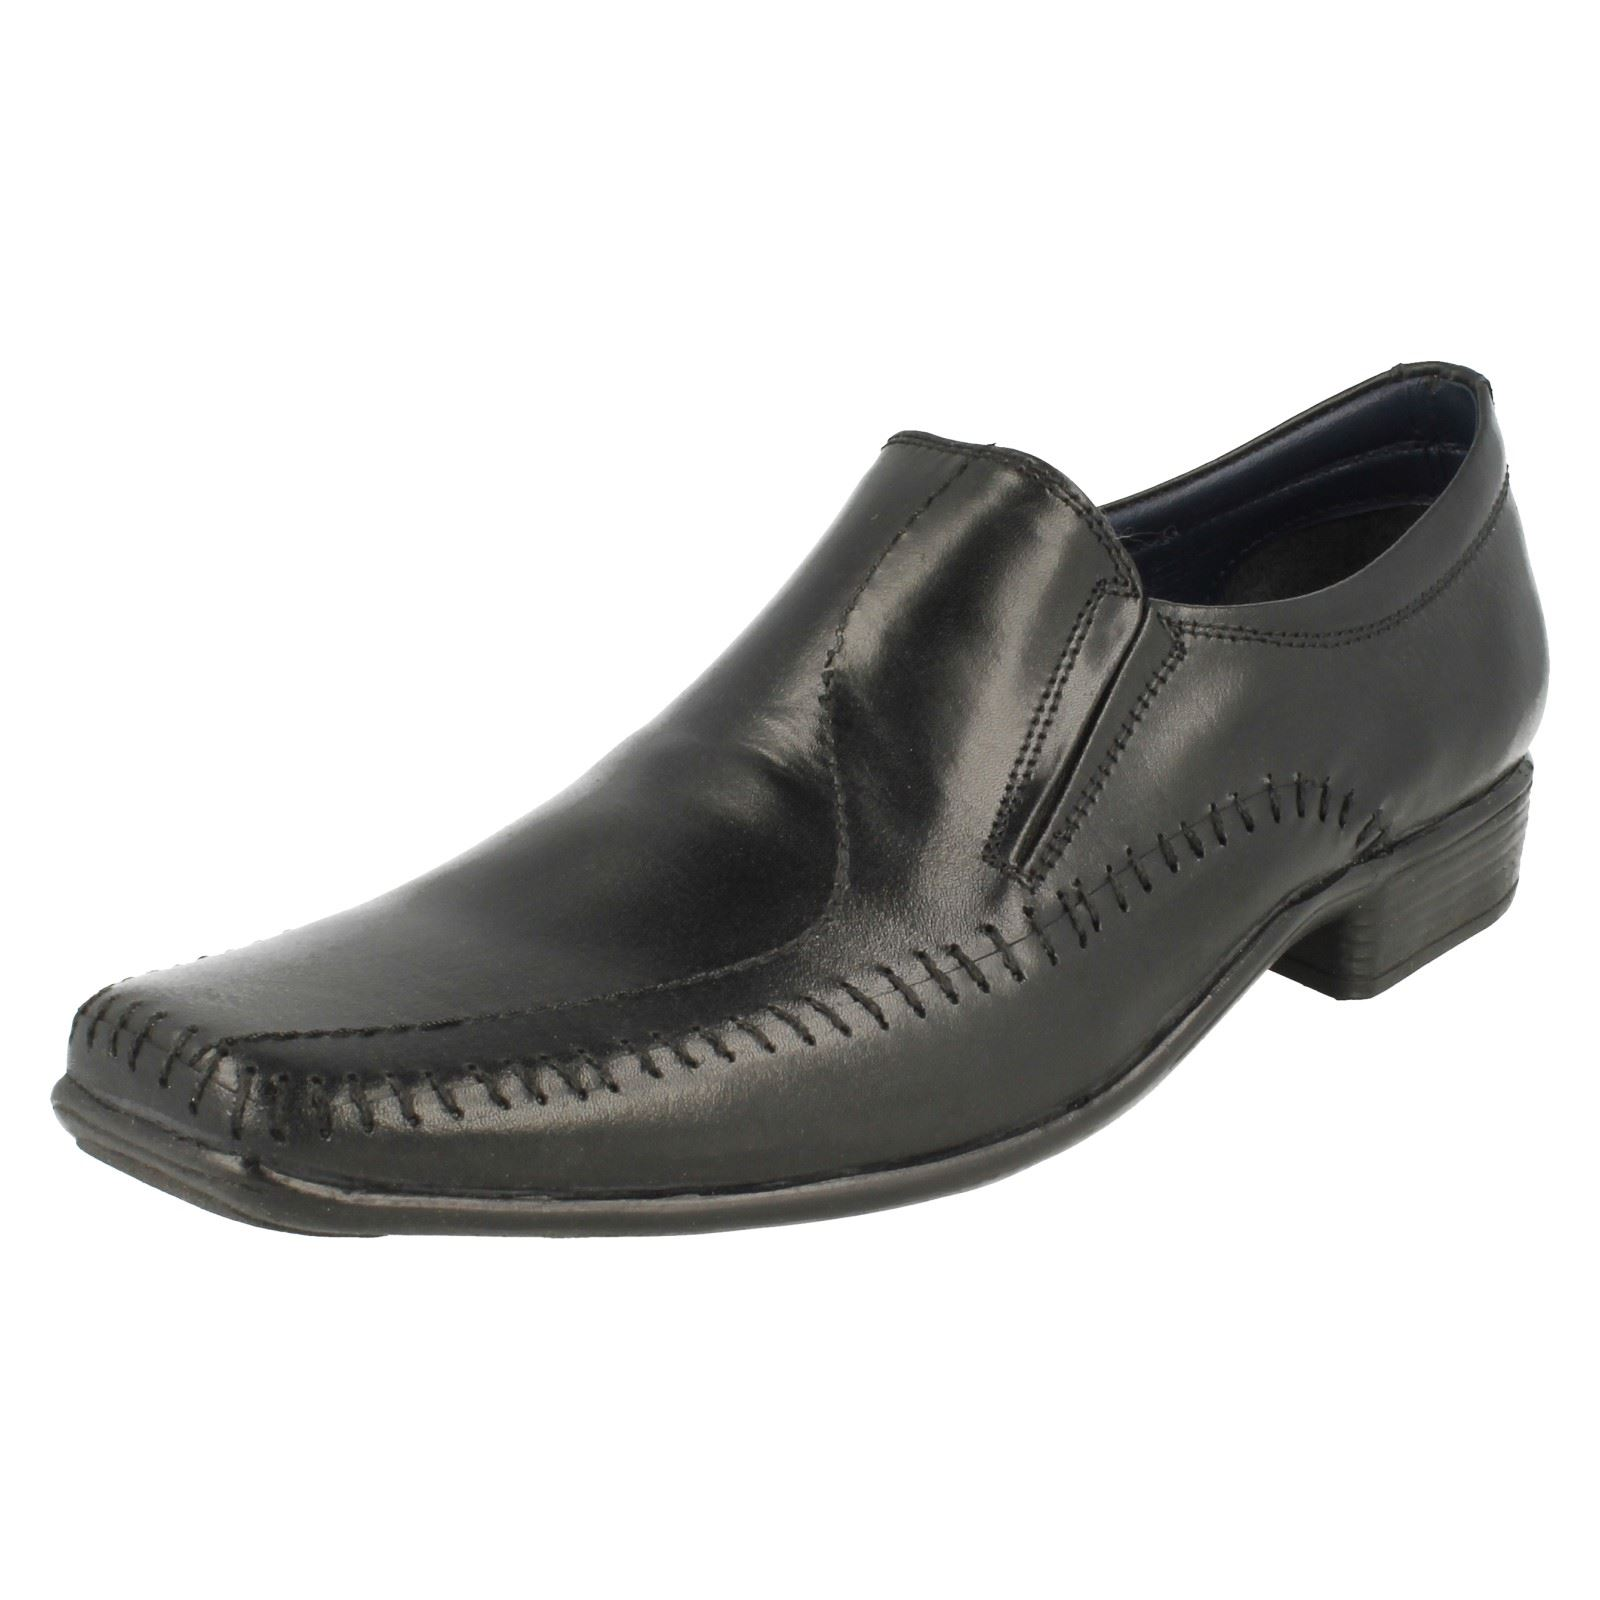 Mens PSL Formal Smart Squared Toe Slip On Leather shoes LE054B